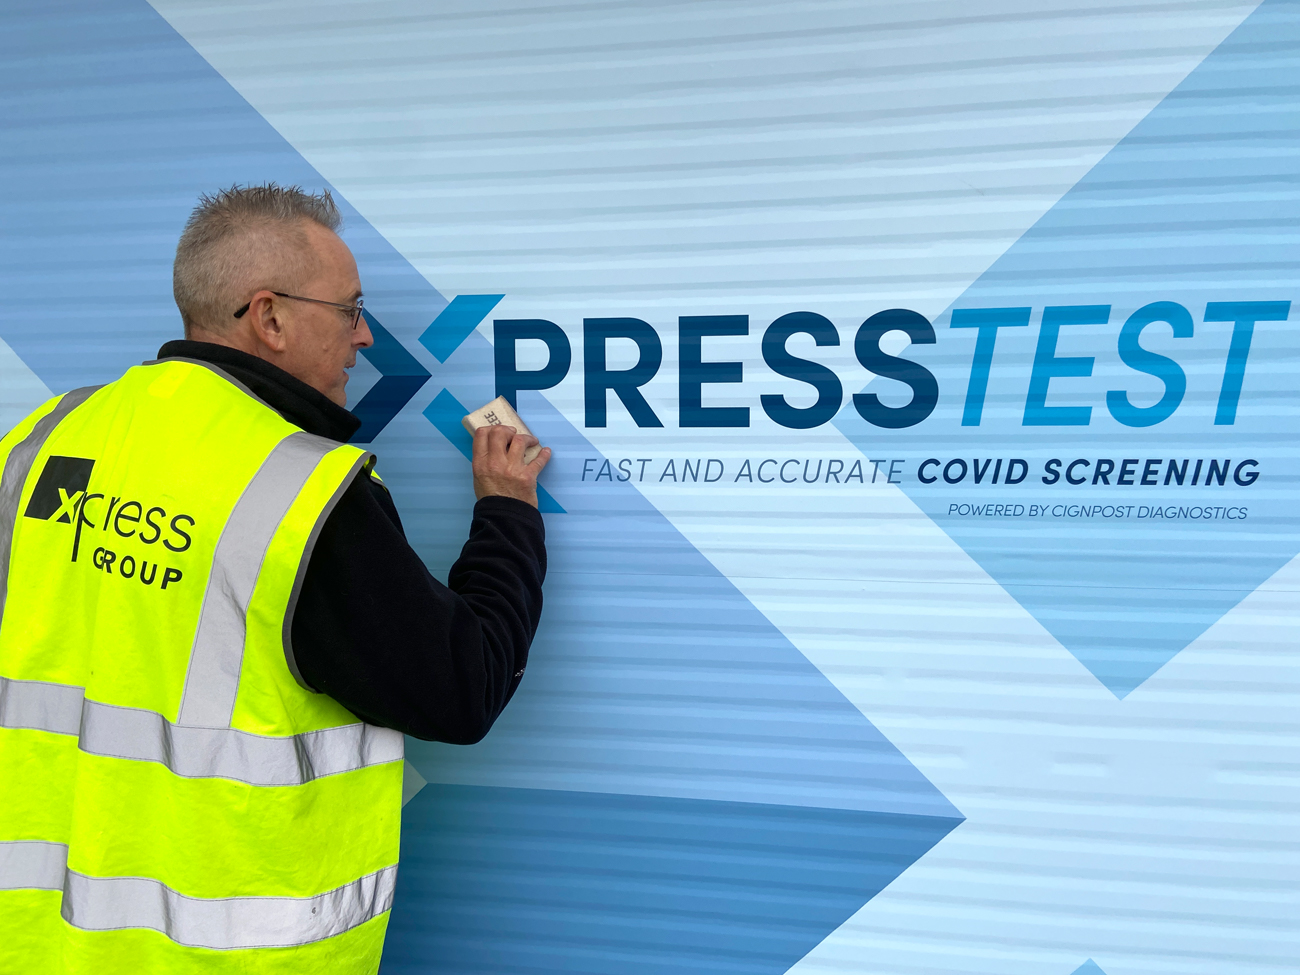 Covid19 Xpress Test Gatwick-Graphic-Xpress Group Installation Units